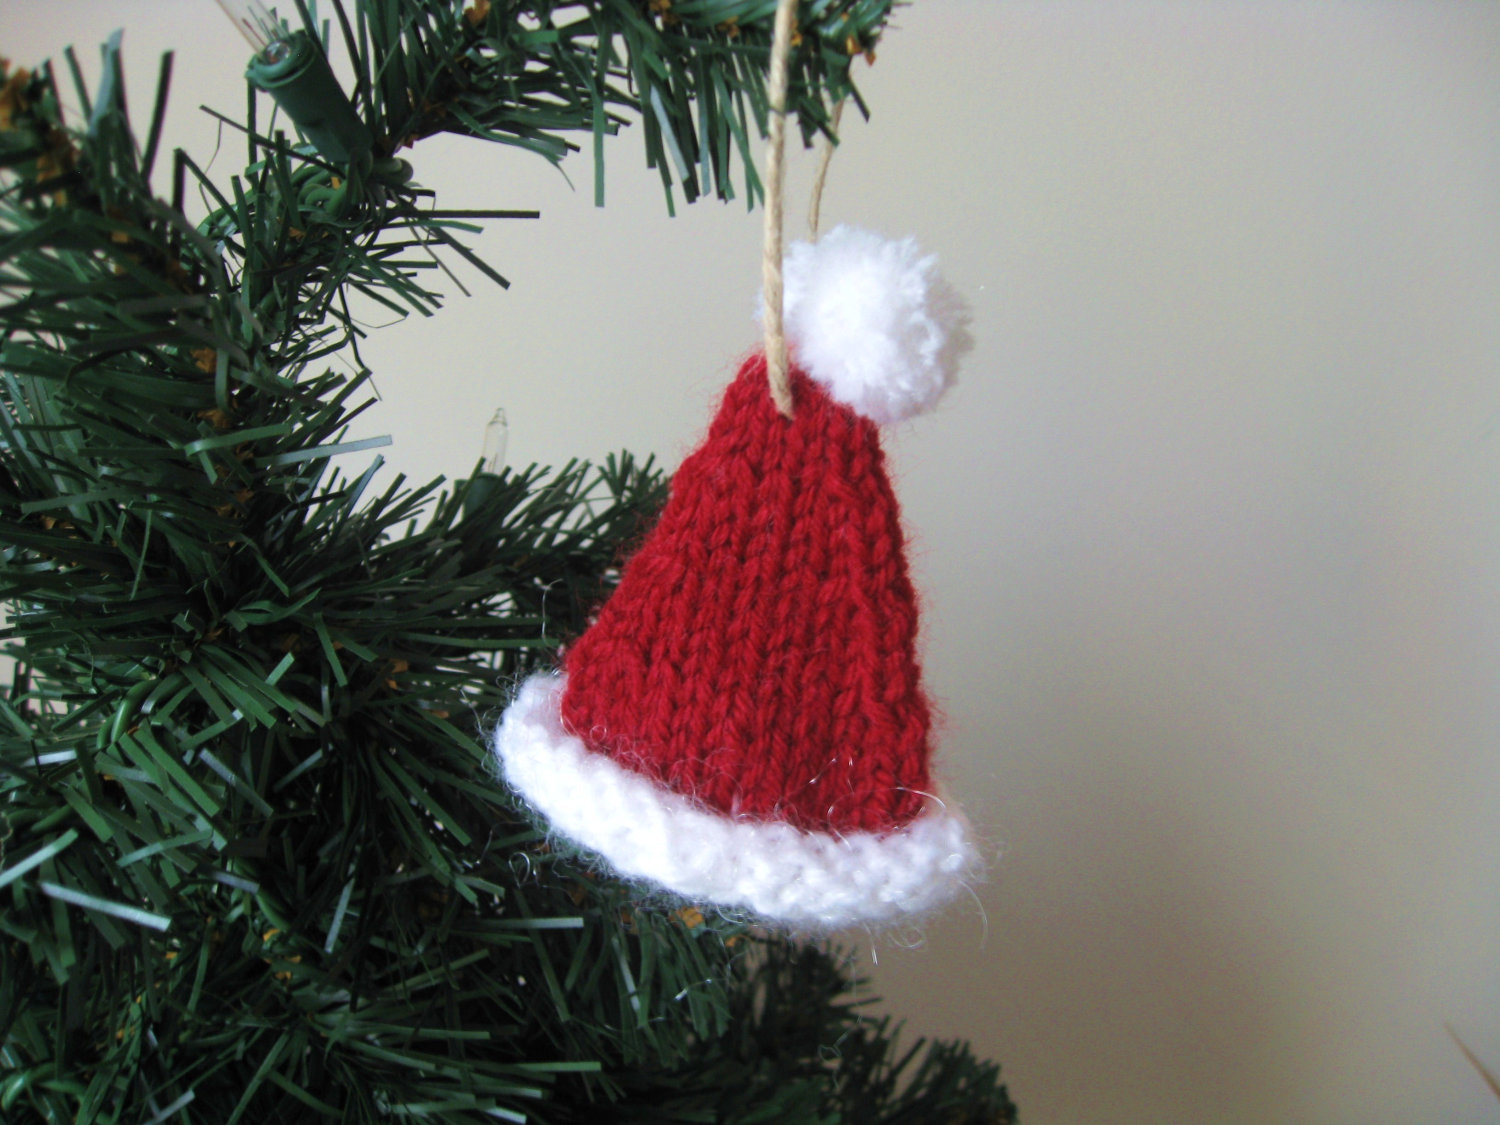 Christmas Knitting Patterns Easy : Family Crafts and Recipes: Knitted Christmas Ornaments- Free Pattern Included